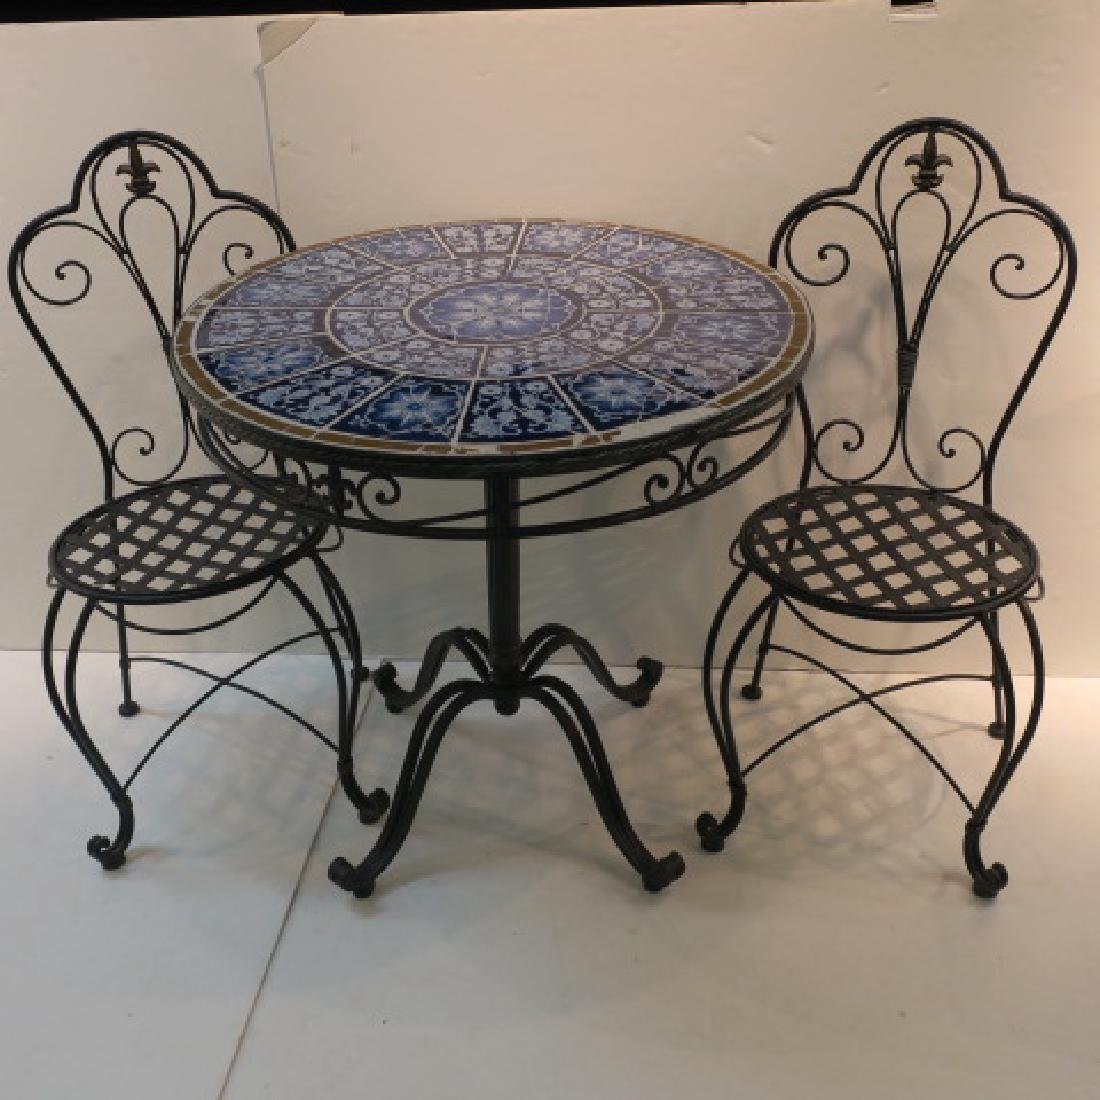 Wrought Iron and Tile Patio Bistro Set: